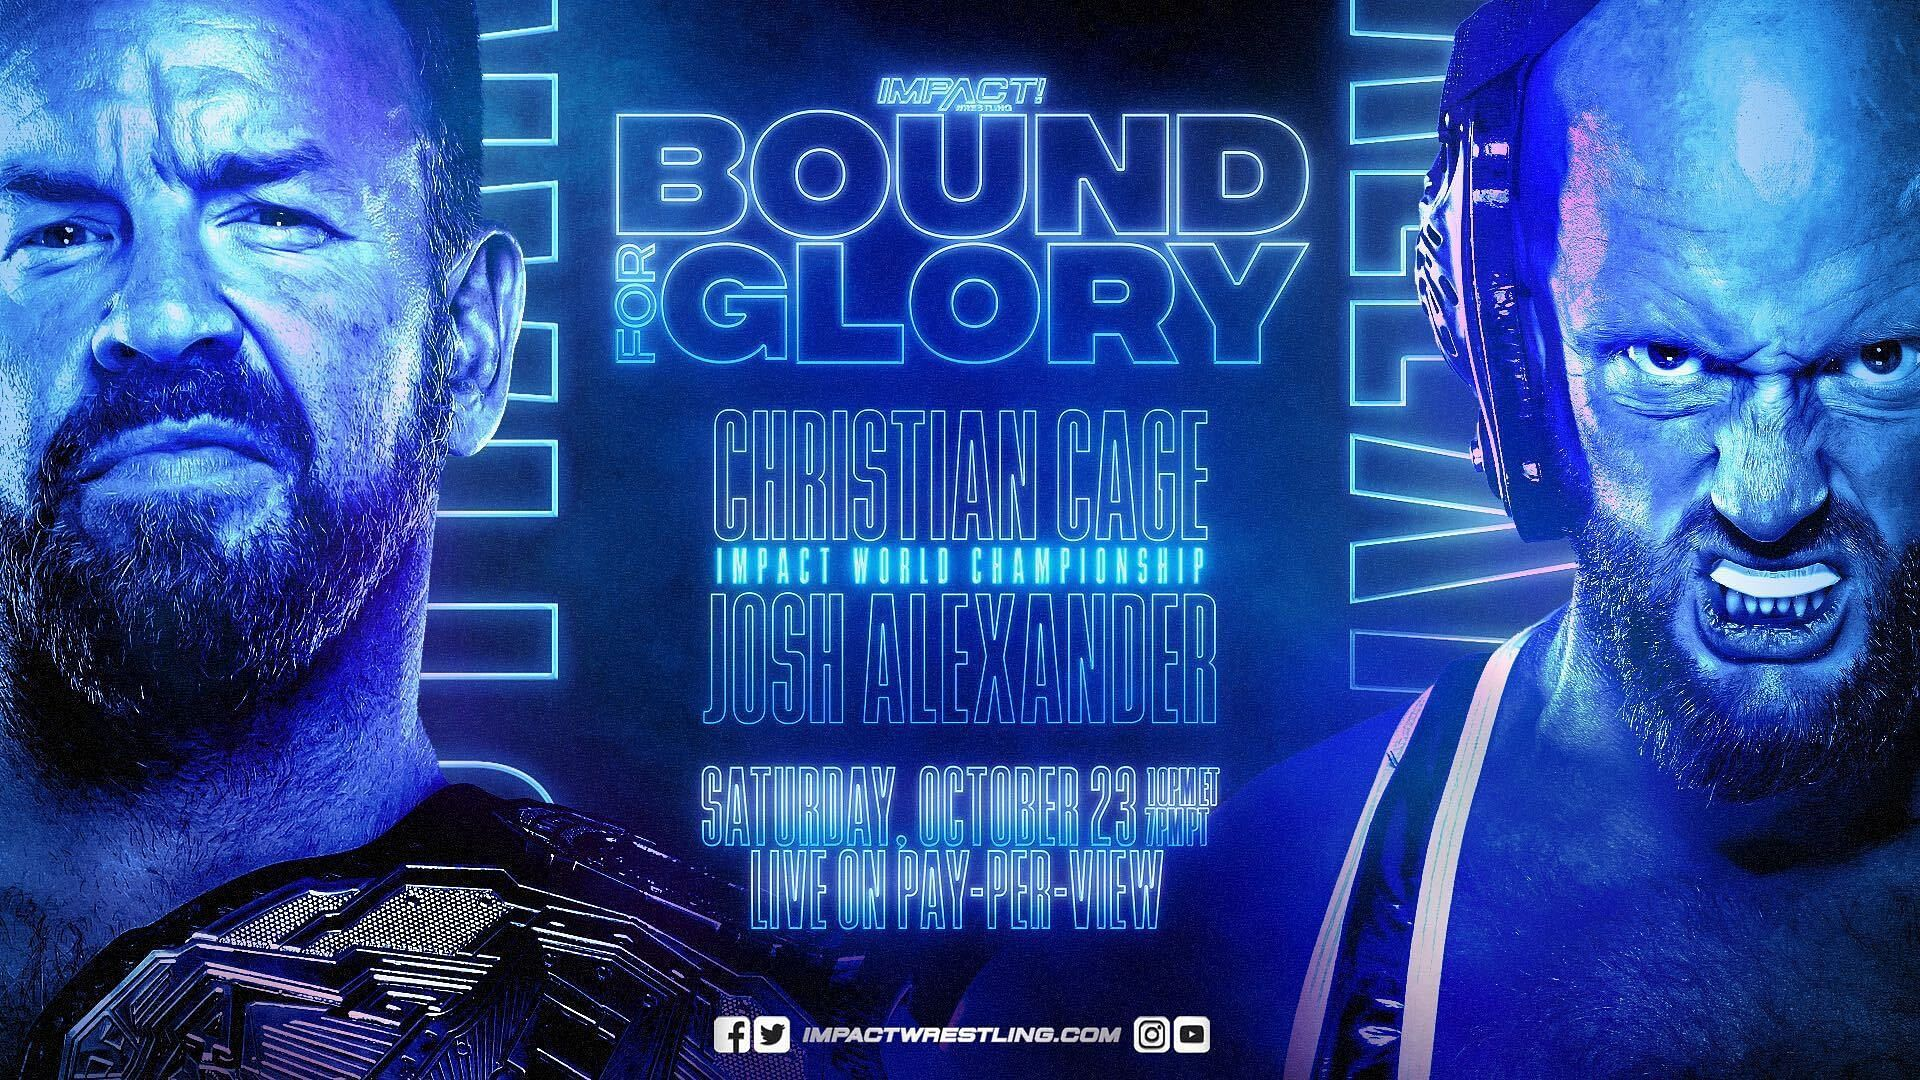 Watch IMPACT Wrestling Bound For Glory 2021 10/23/21 -23 October 2021